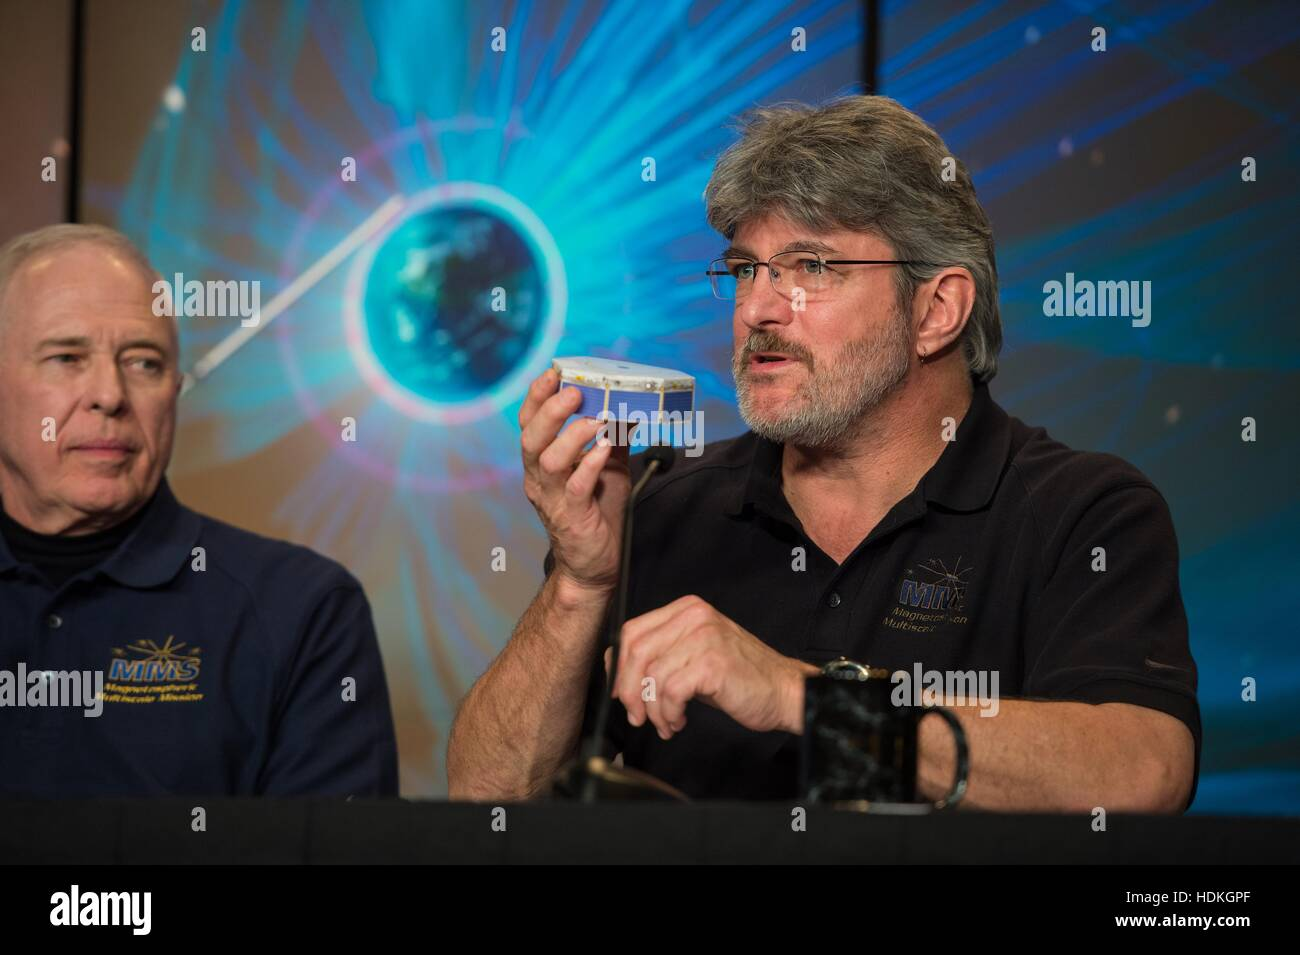 NASA Magnetospheric Multiscale (MMS) mission project manager Craig Tooley speaks during a briefing on the upcoming - Stock Image